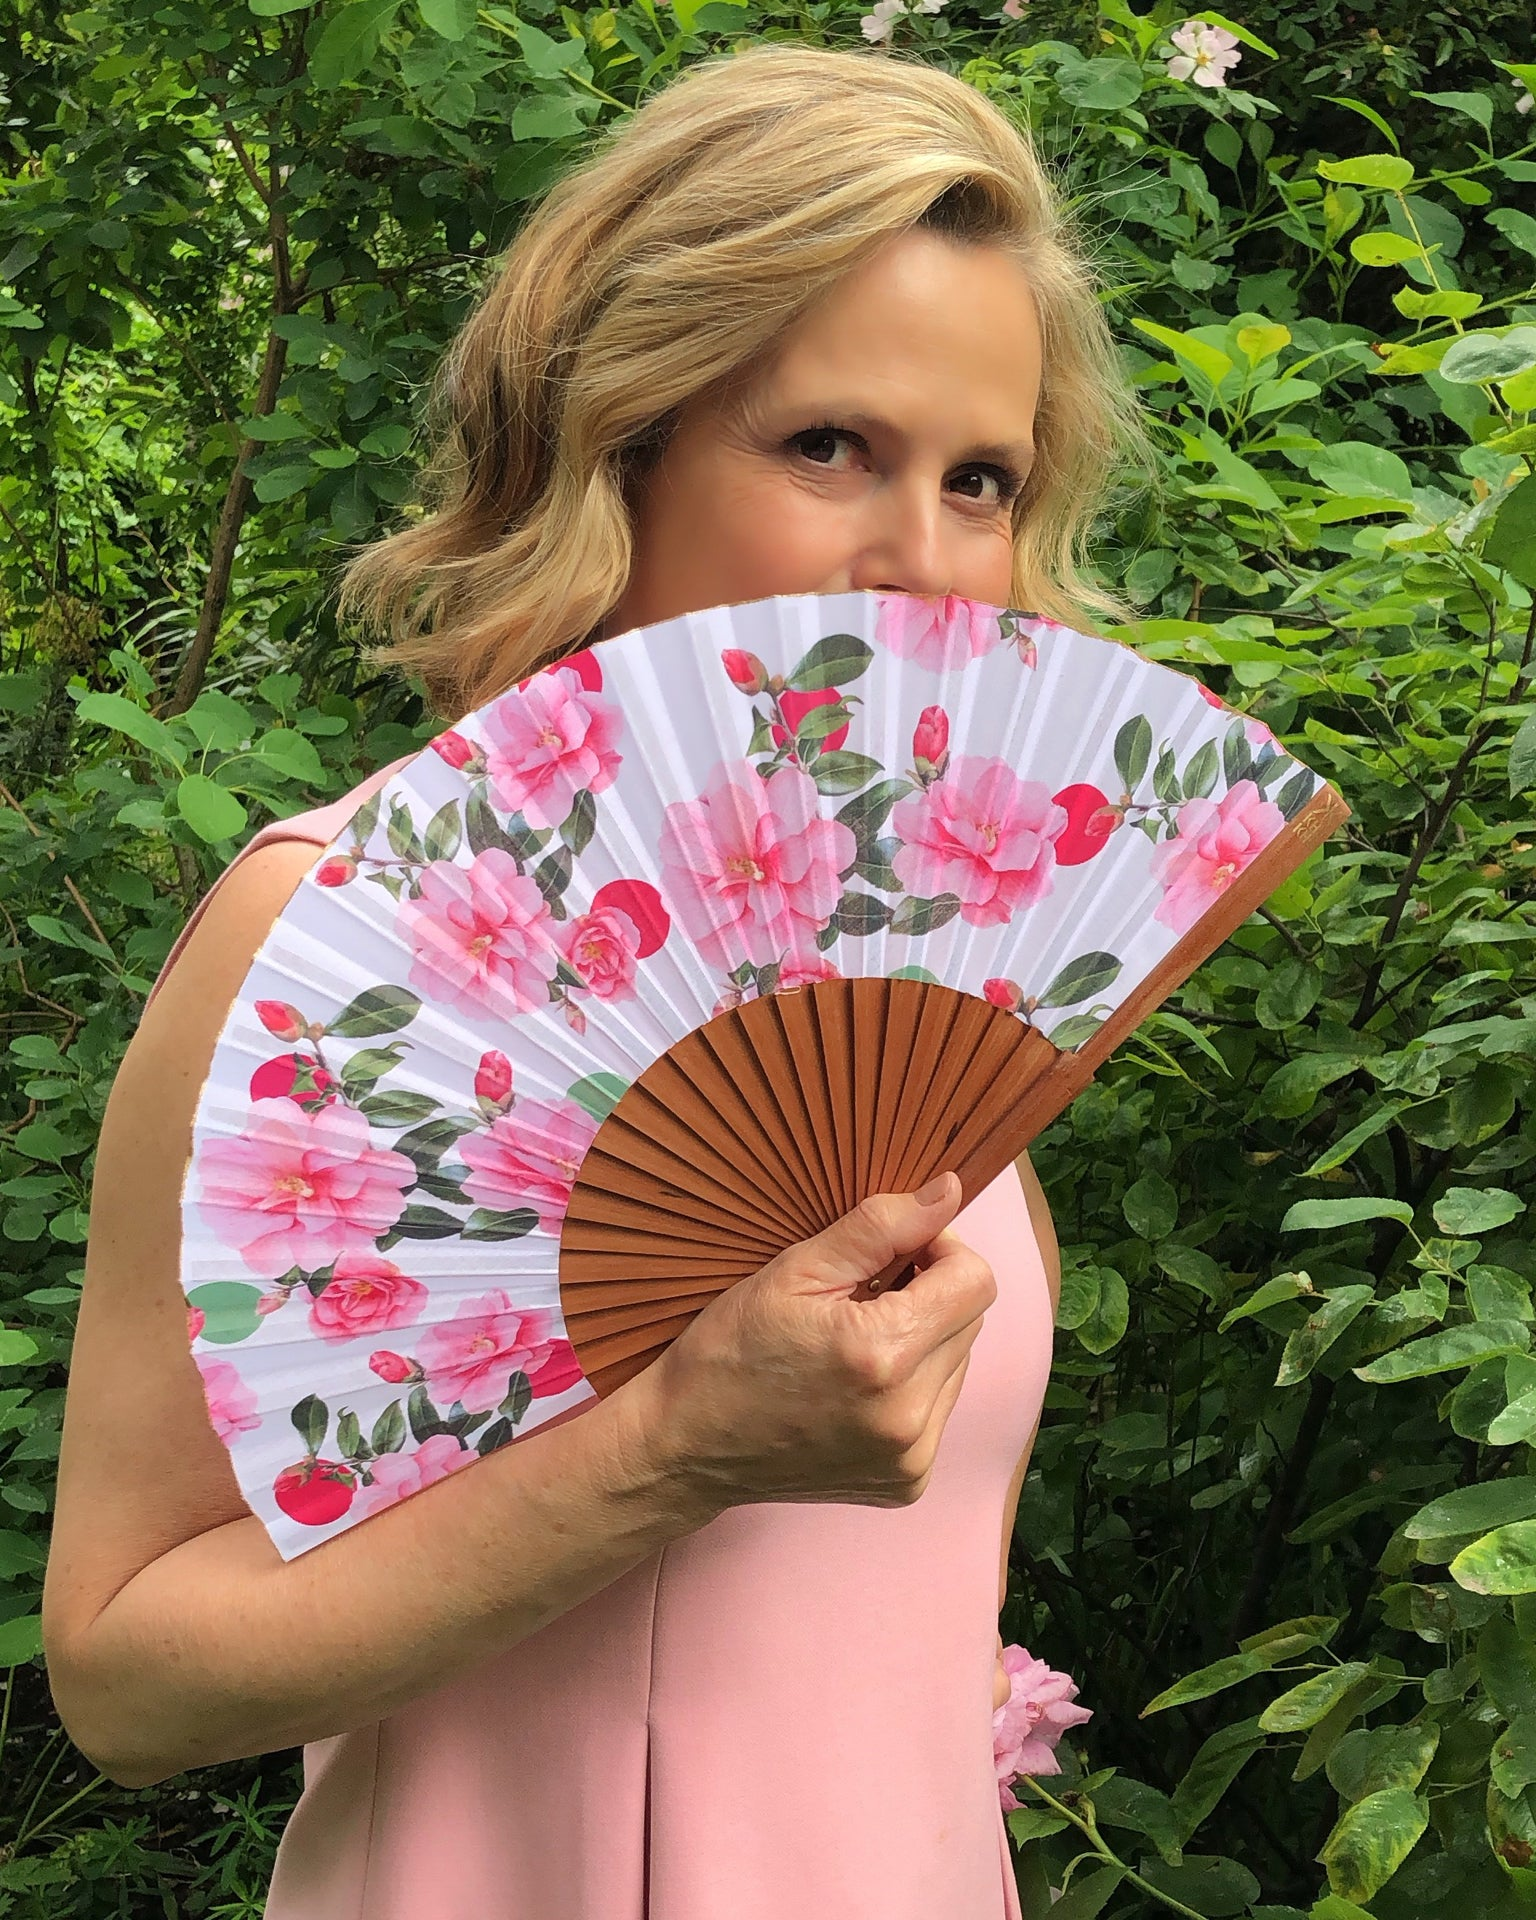 Liz Earle holding Khu Khu X Liz Earle Beautiful Cool Camellias Hand-Fan with collaboration print (Floral with pink and green spots and camellias.)